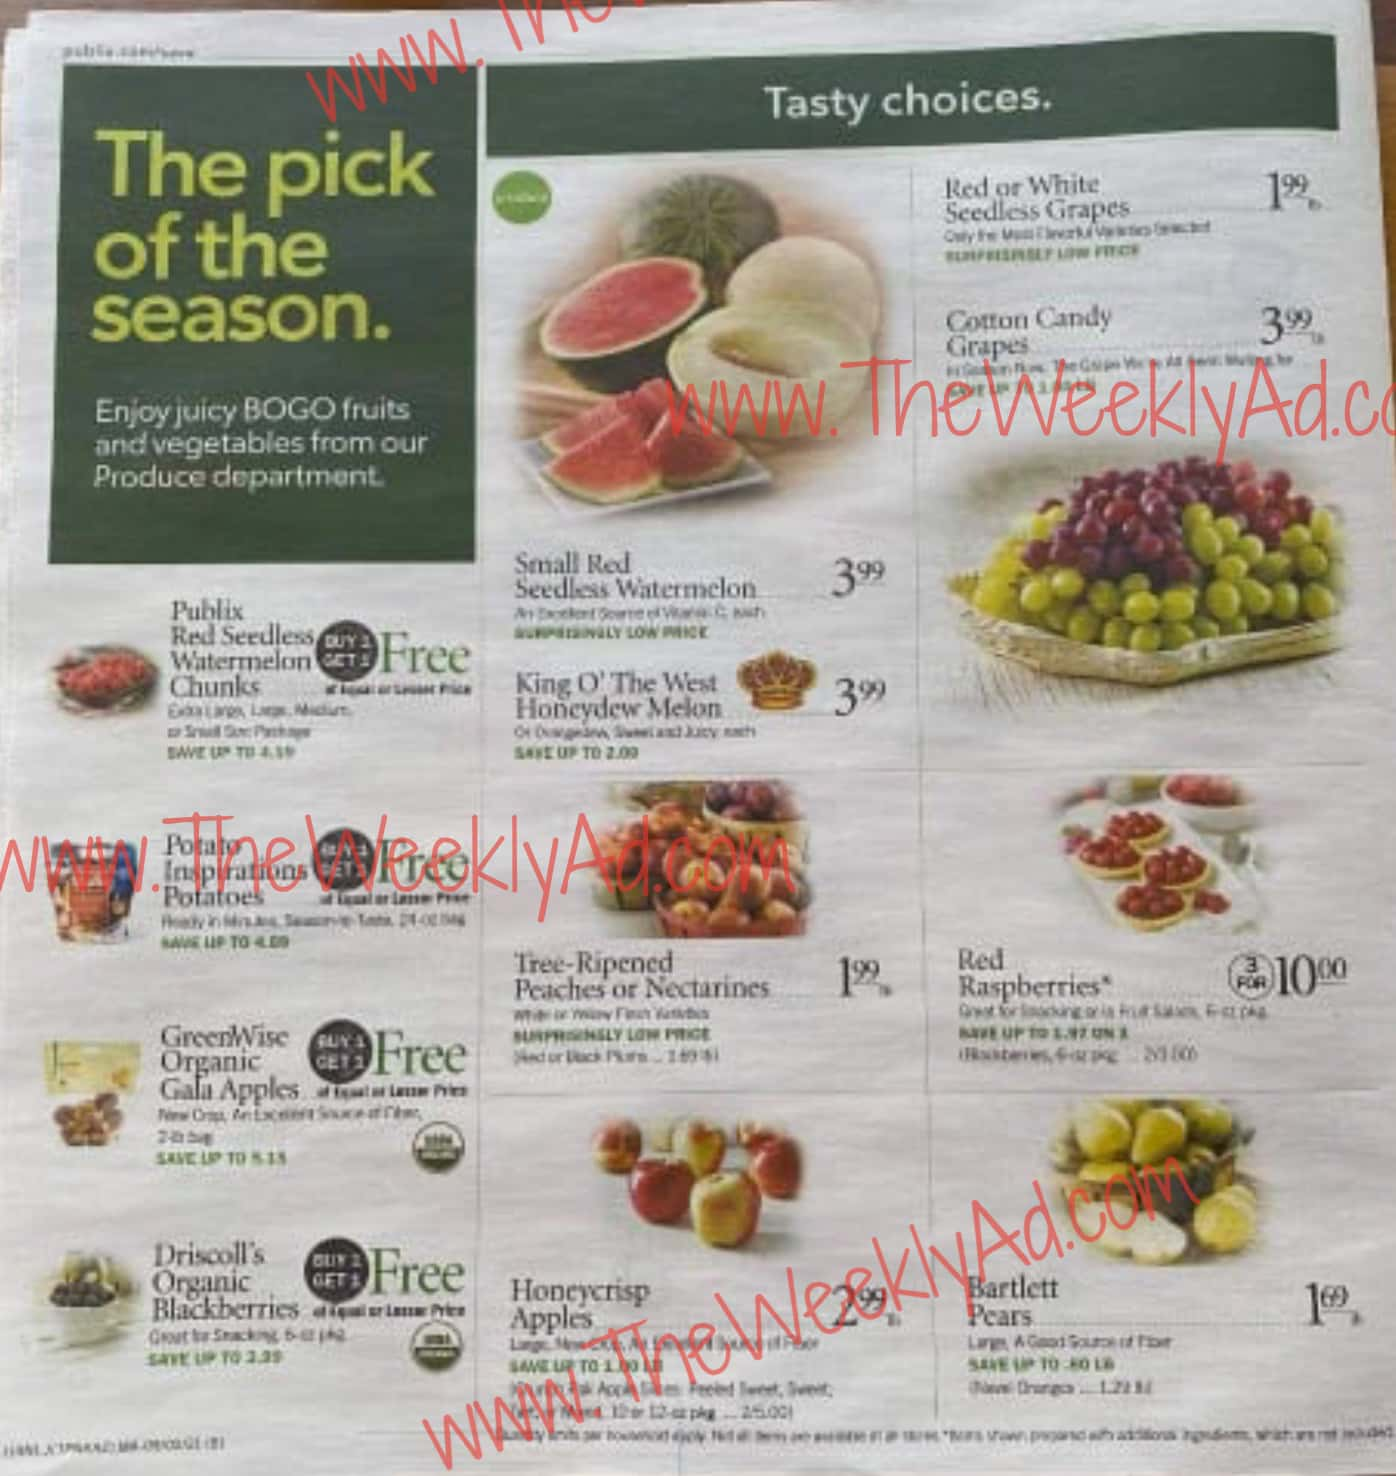 publix_weekly_ad_090121_06